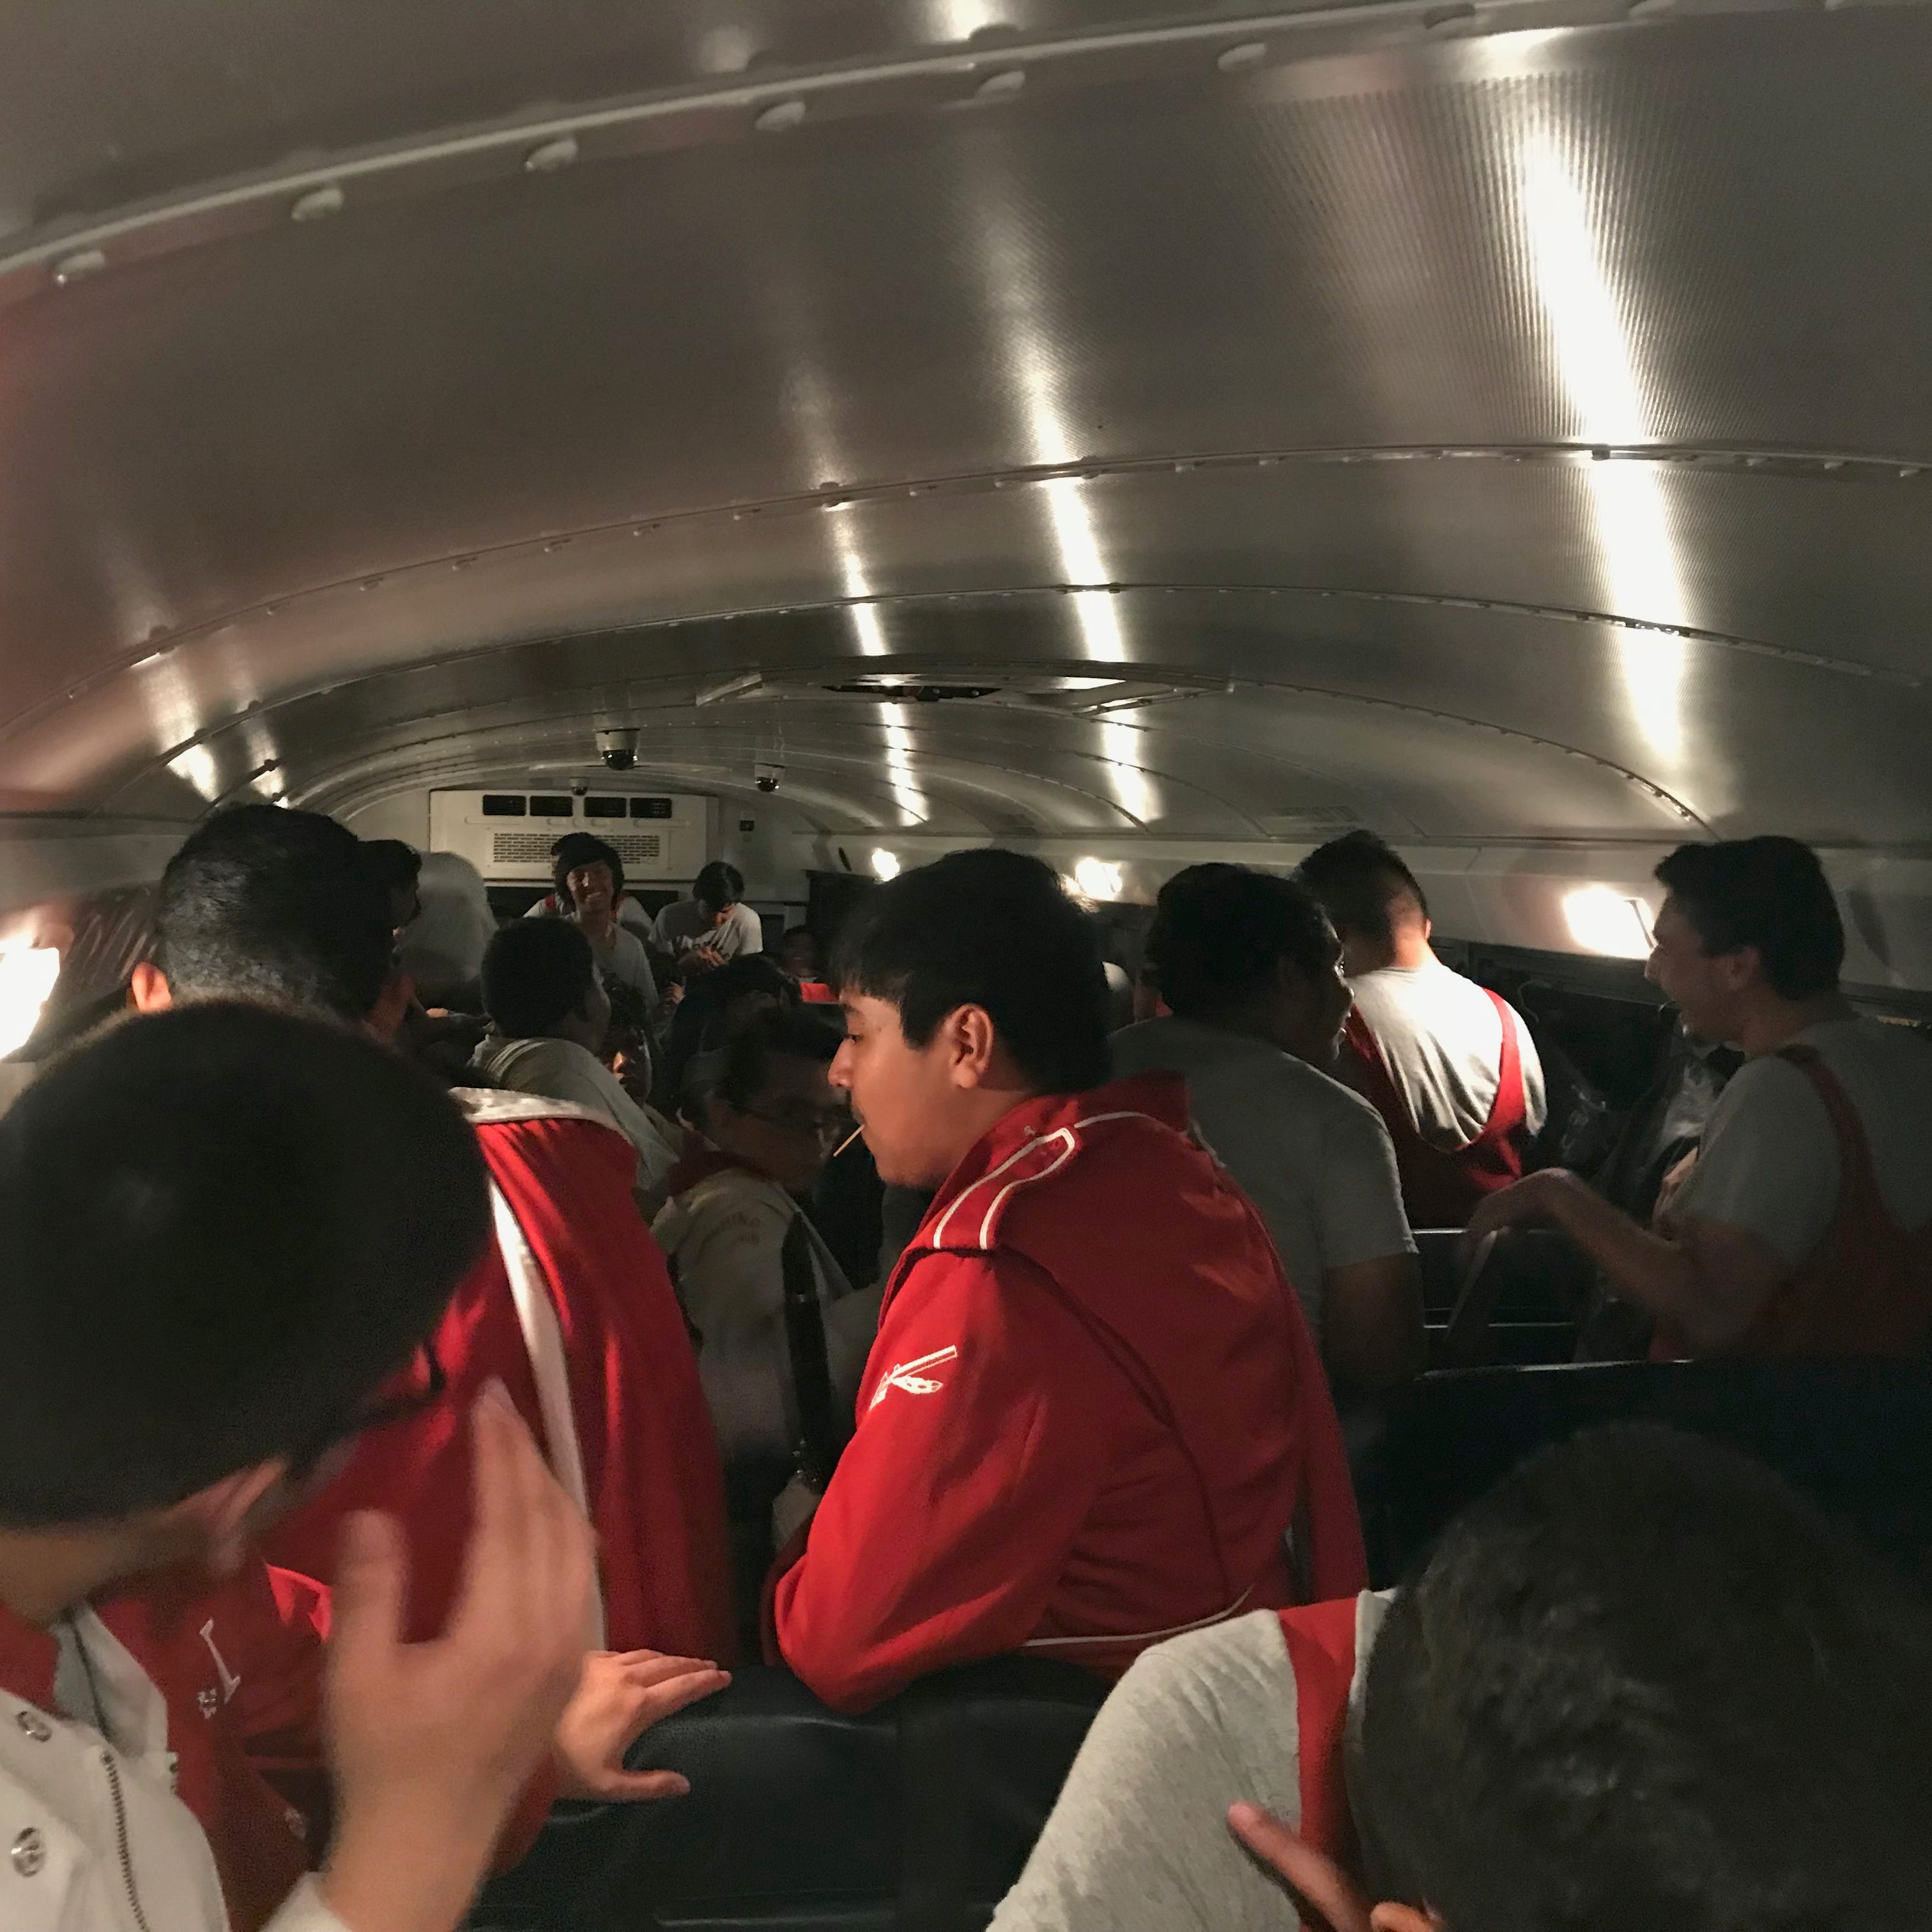 Immokalee band students kept on bus during lightning storm; school district investigating